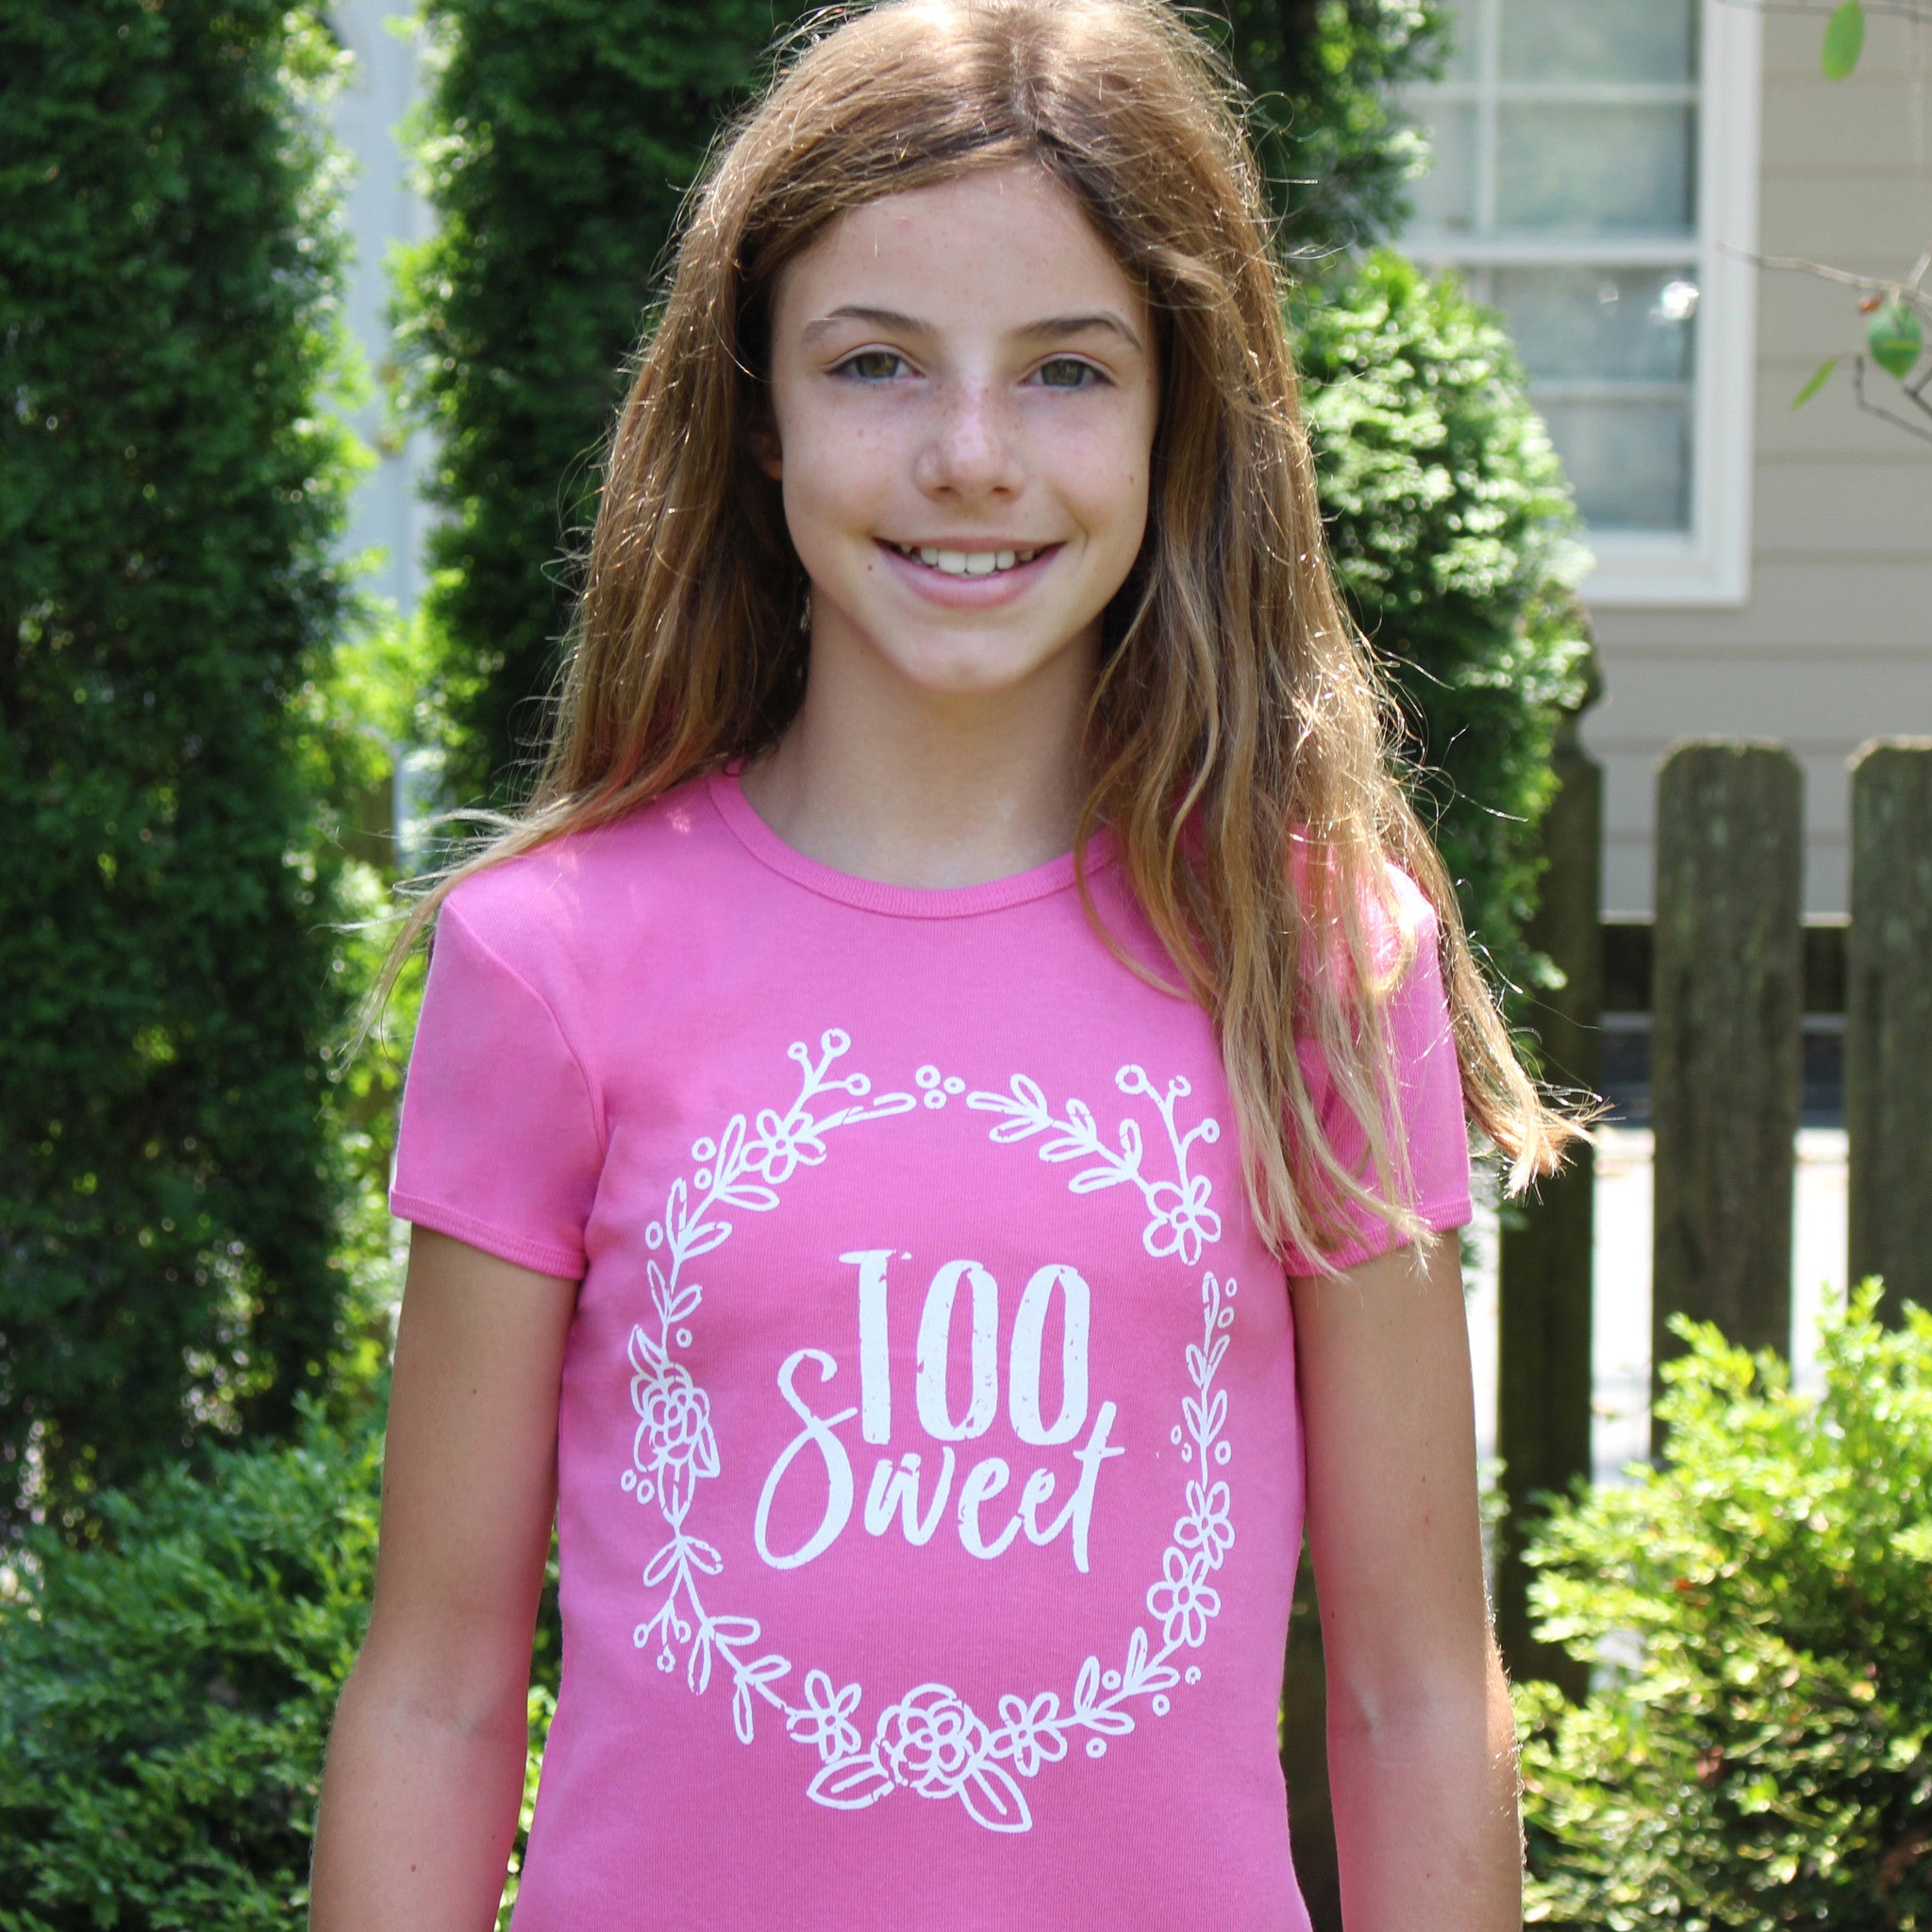 'Too Sweet' Girl's Tee - Sugar Linings Swag - Diabetes Shirts and Clothing